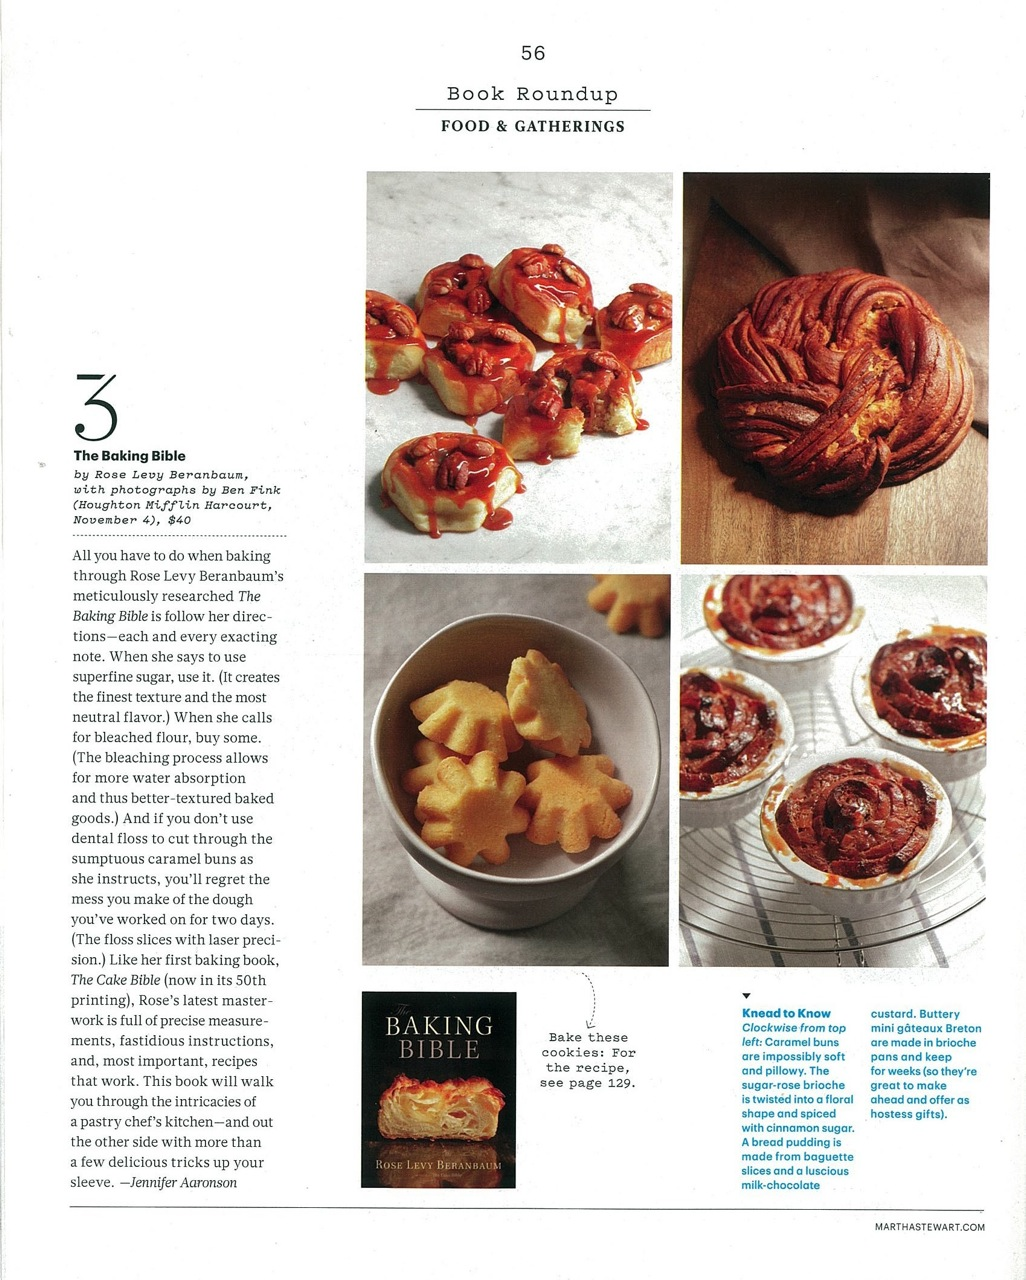 Beautiful Review In Martha Stewart Living